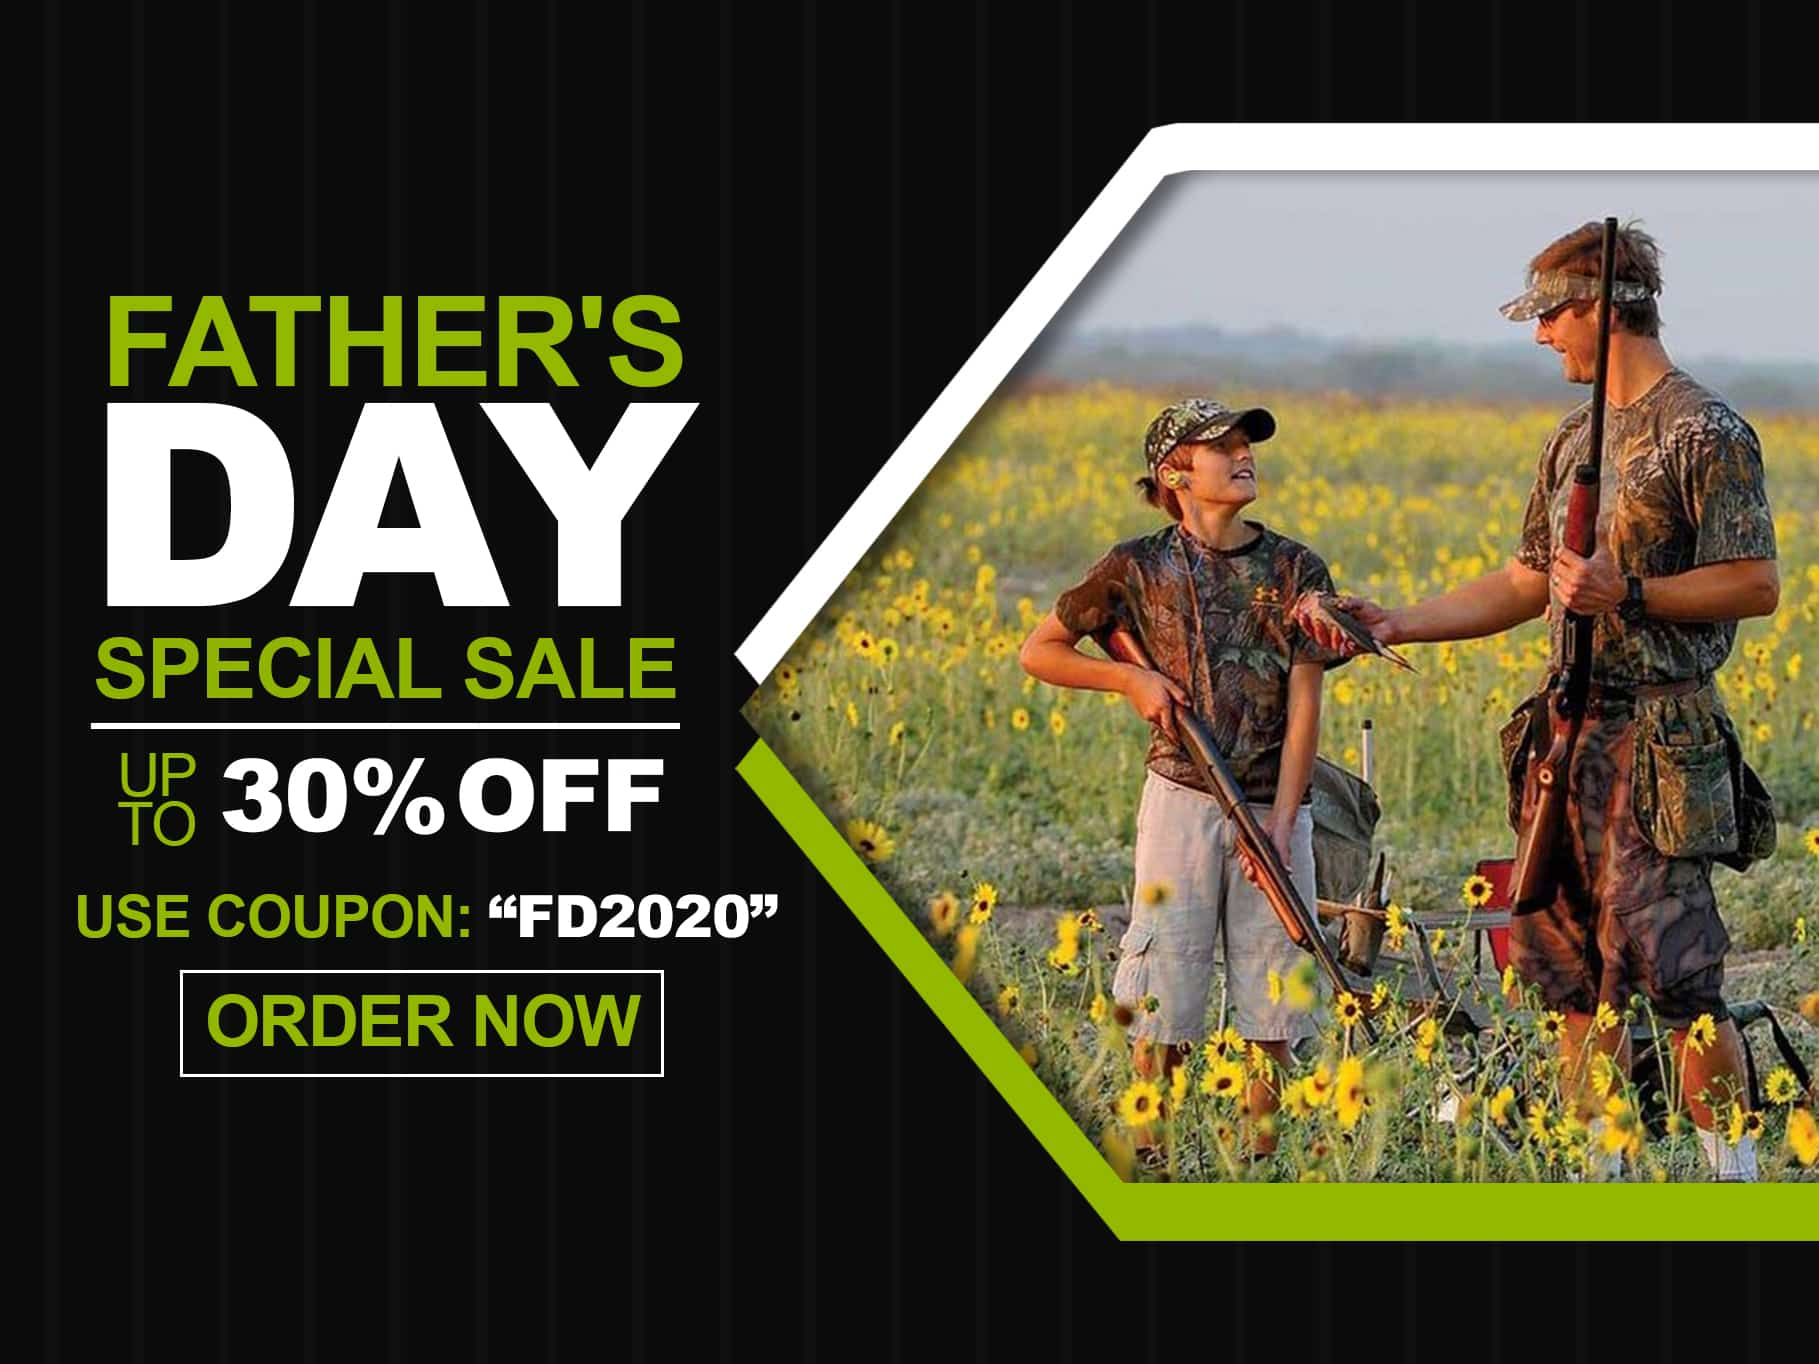 Father's Day Special Sale